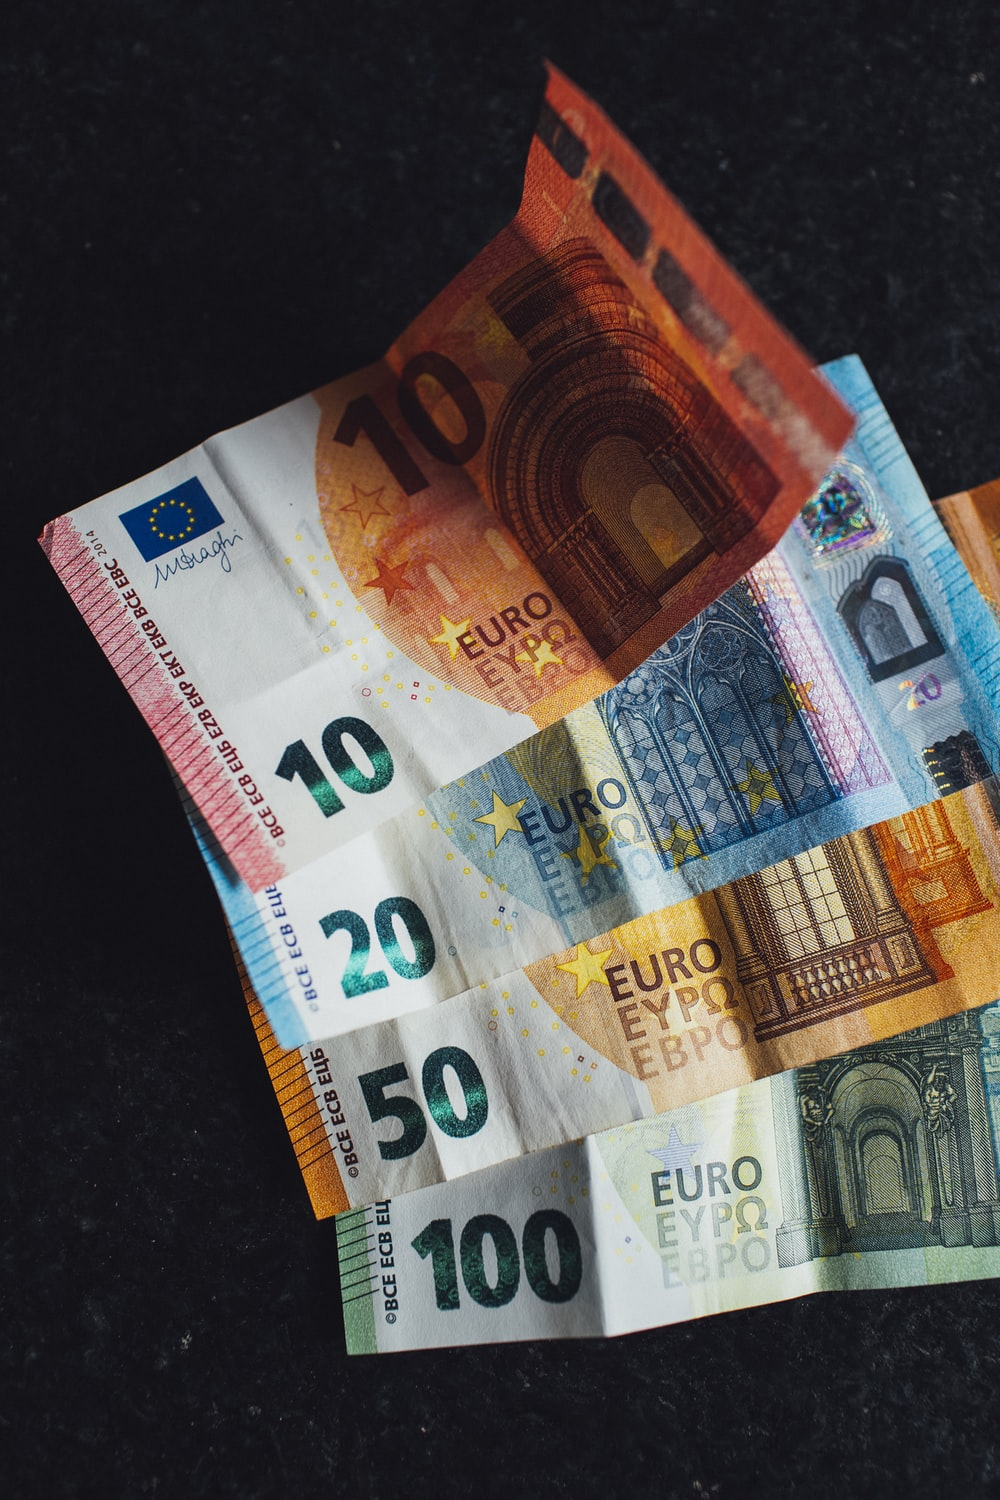 10 euro bill on black textile